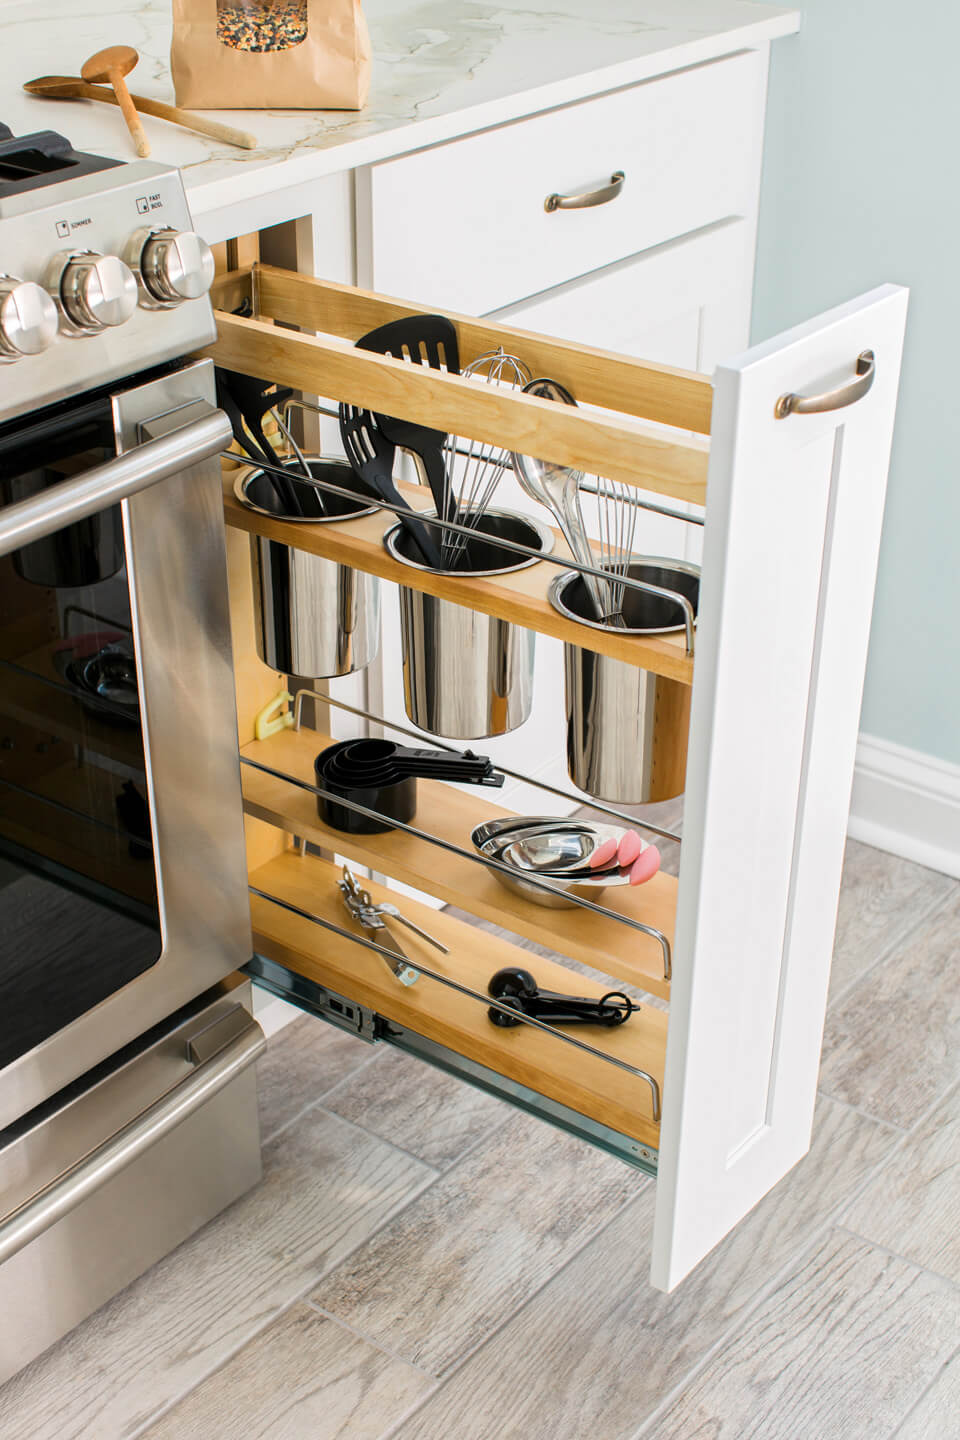 6 utensil drawers in unused cabinet space - Kitchen Organization Ideas